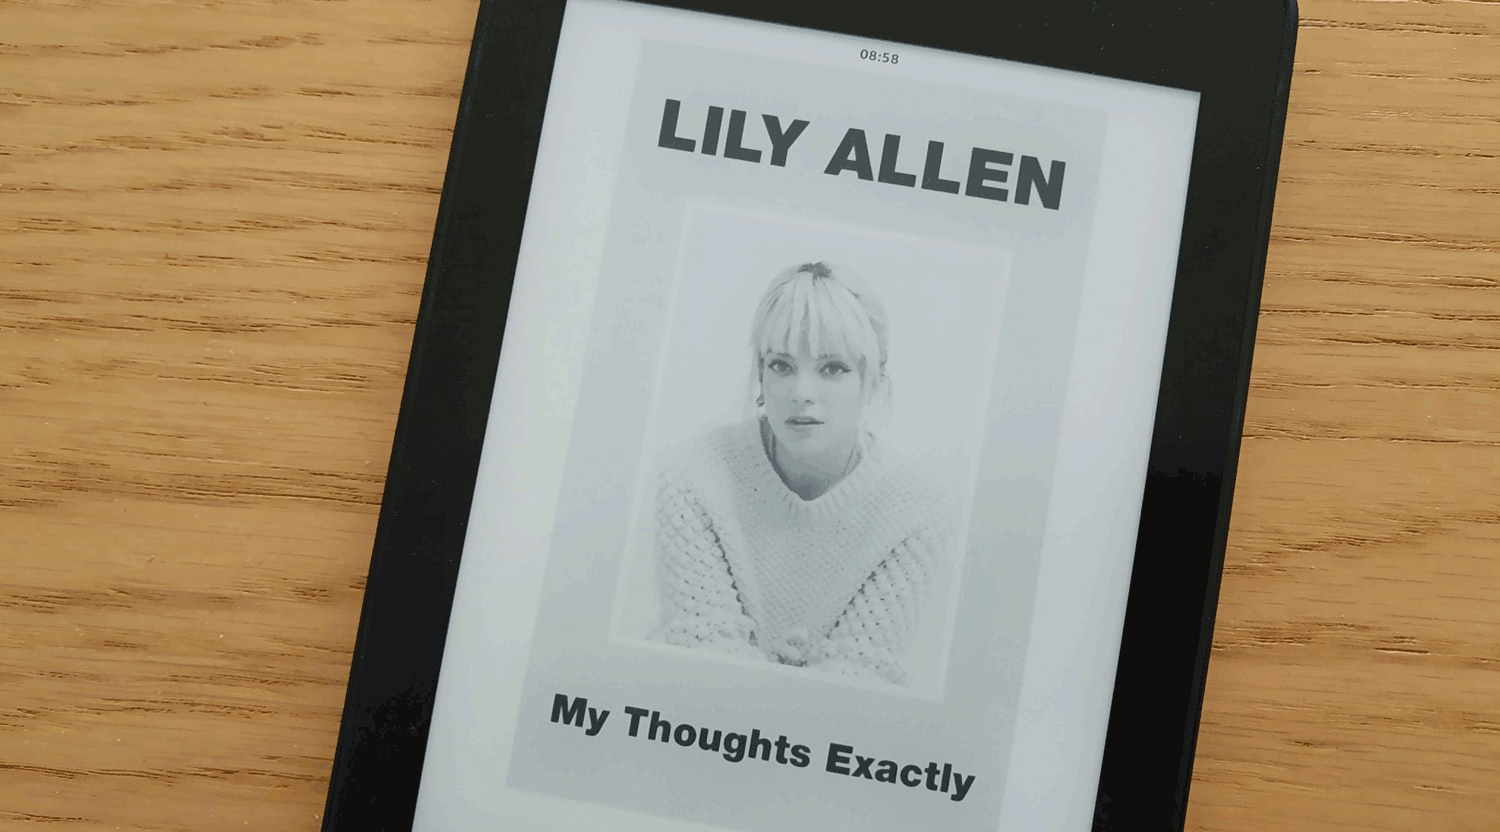 a kindle with the cover of the book My Thoughts Exactly by Lily Allen with a photo of Lily Allen over a wooden texture